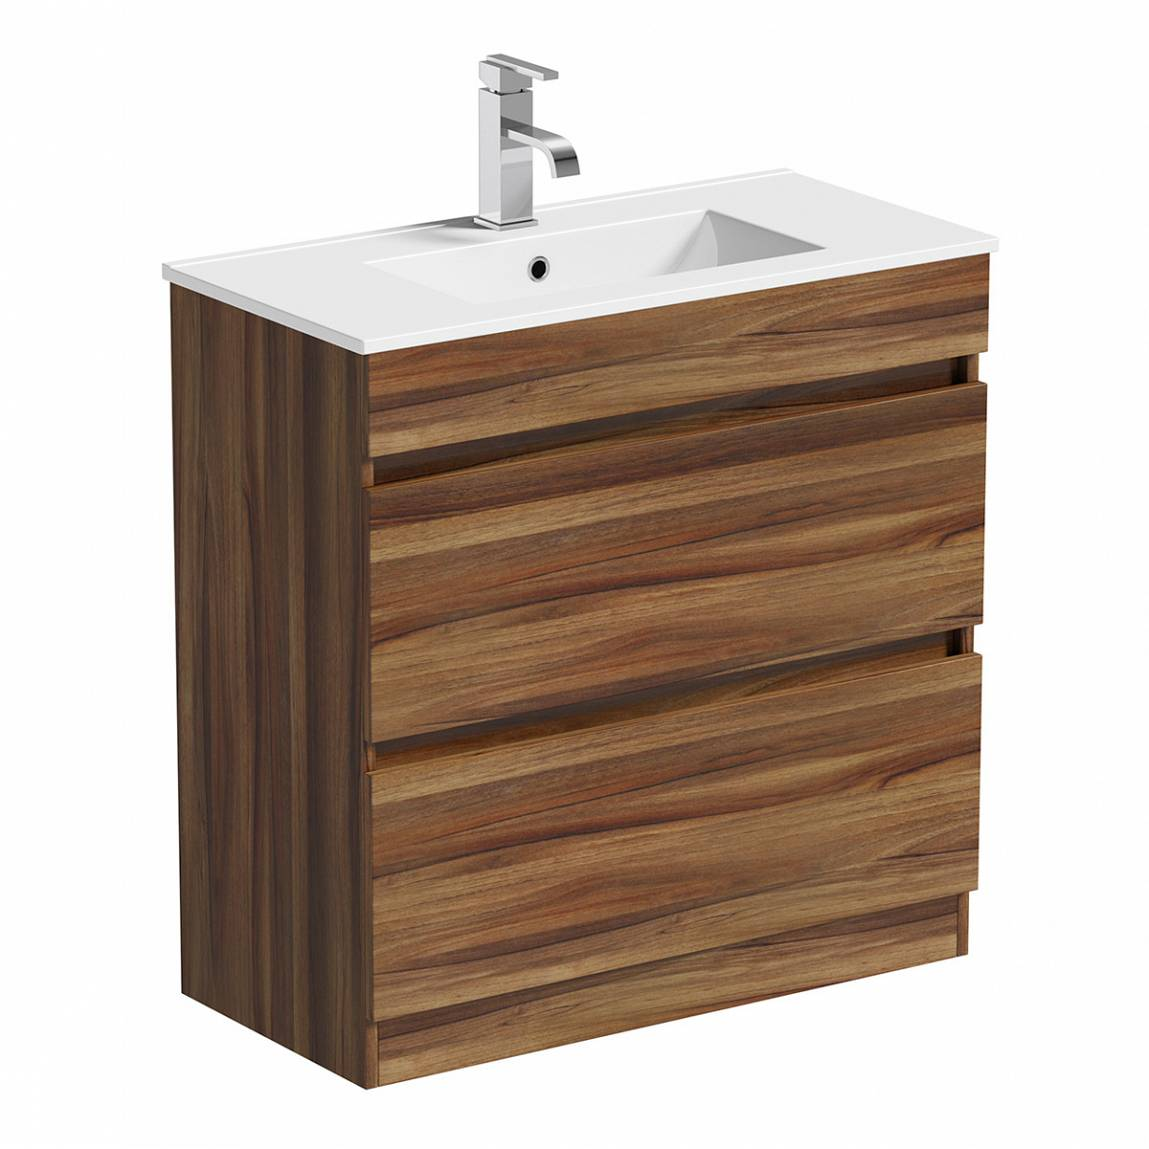 Image of Plan Walnut Floor Mounted 800 Drawer Unit & Inset Basin